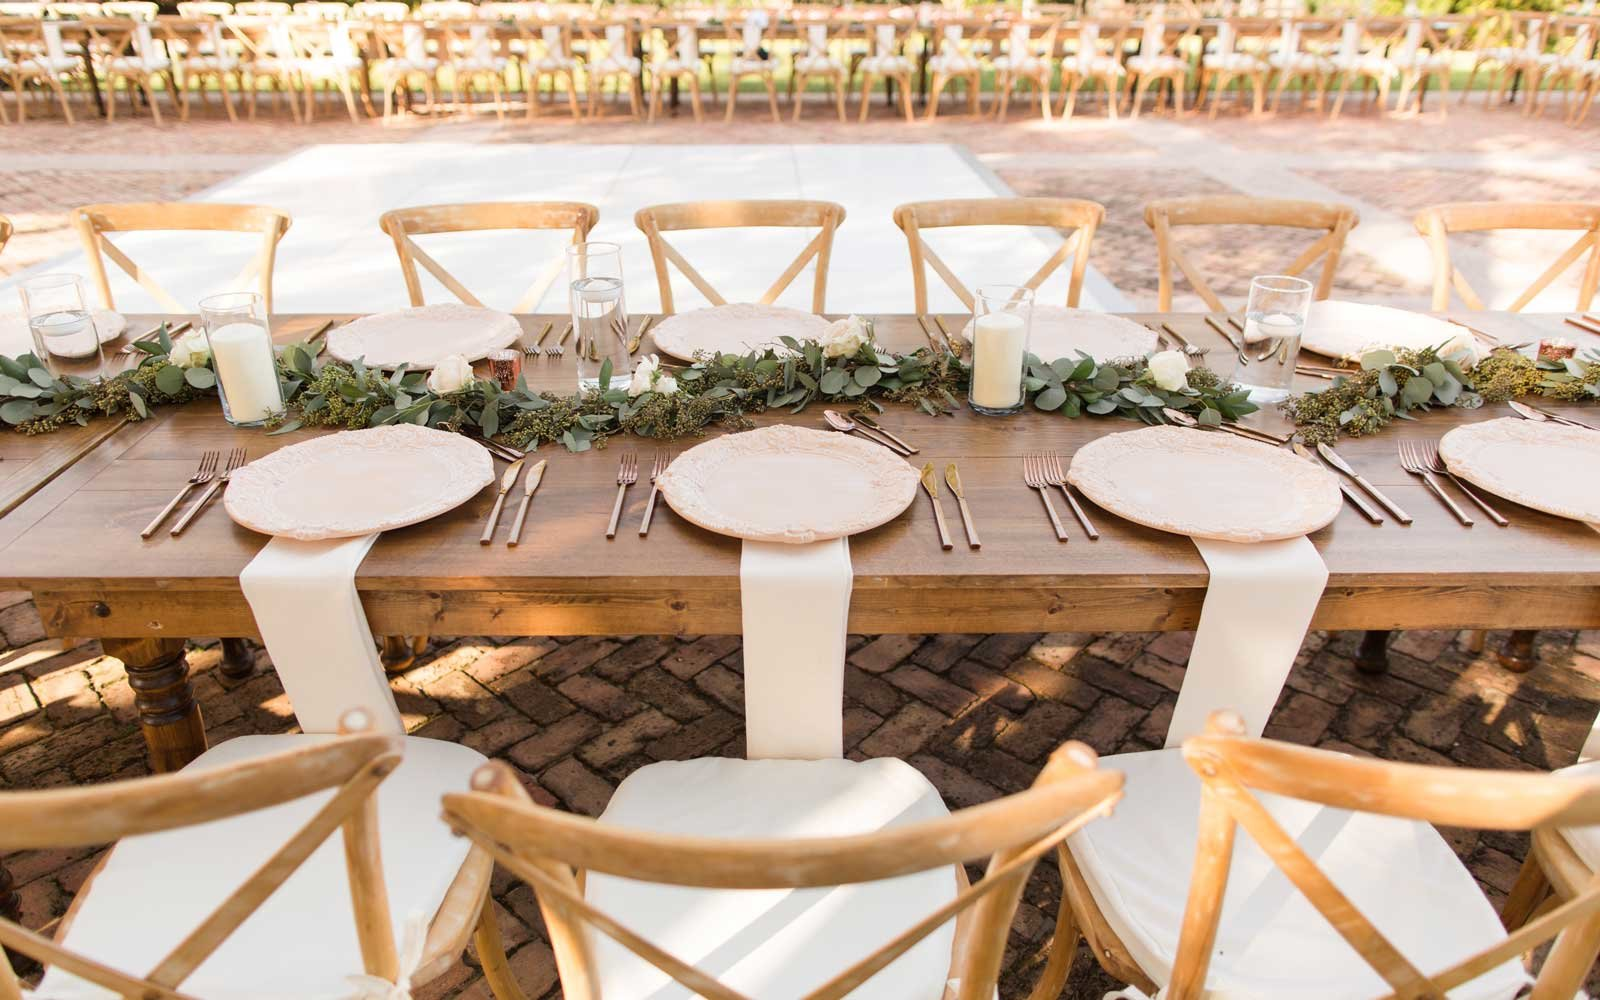 Dreamy outdoor wedding decorations in Miami, Florida